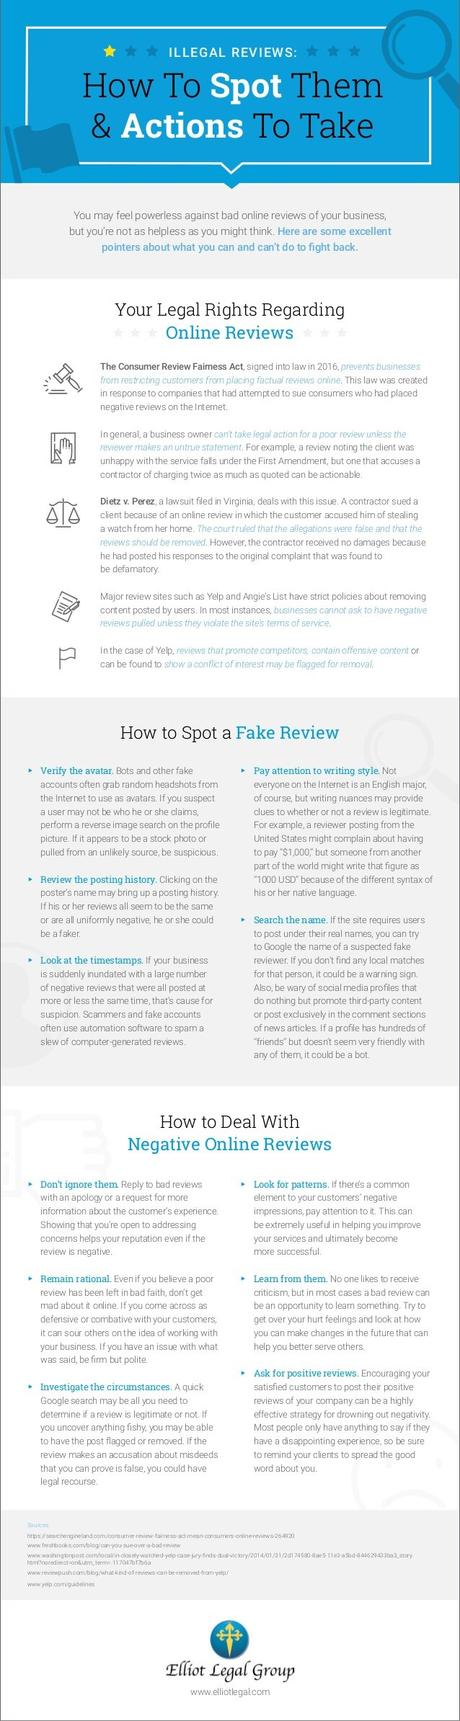 illegal-reviews-how-to-spot-them-and-actions-to-take-1-638.jpg